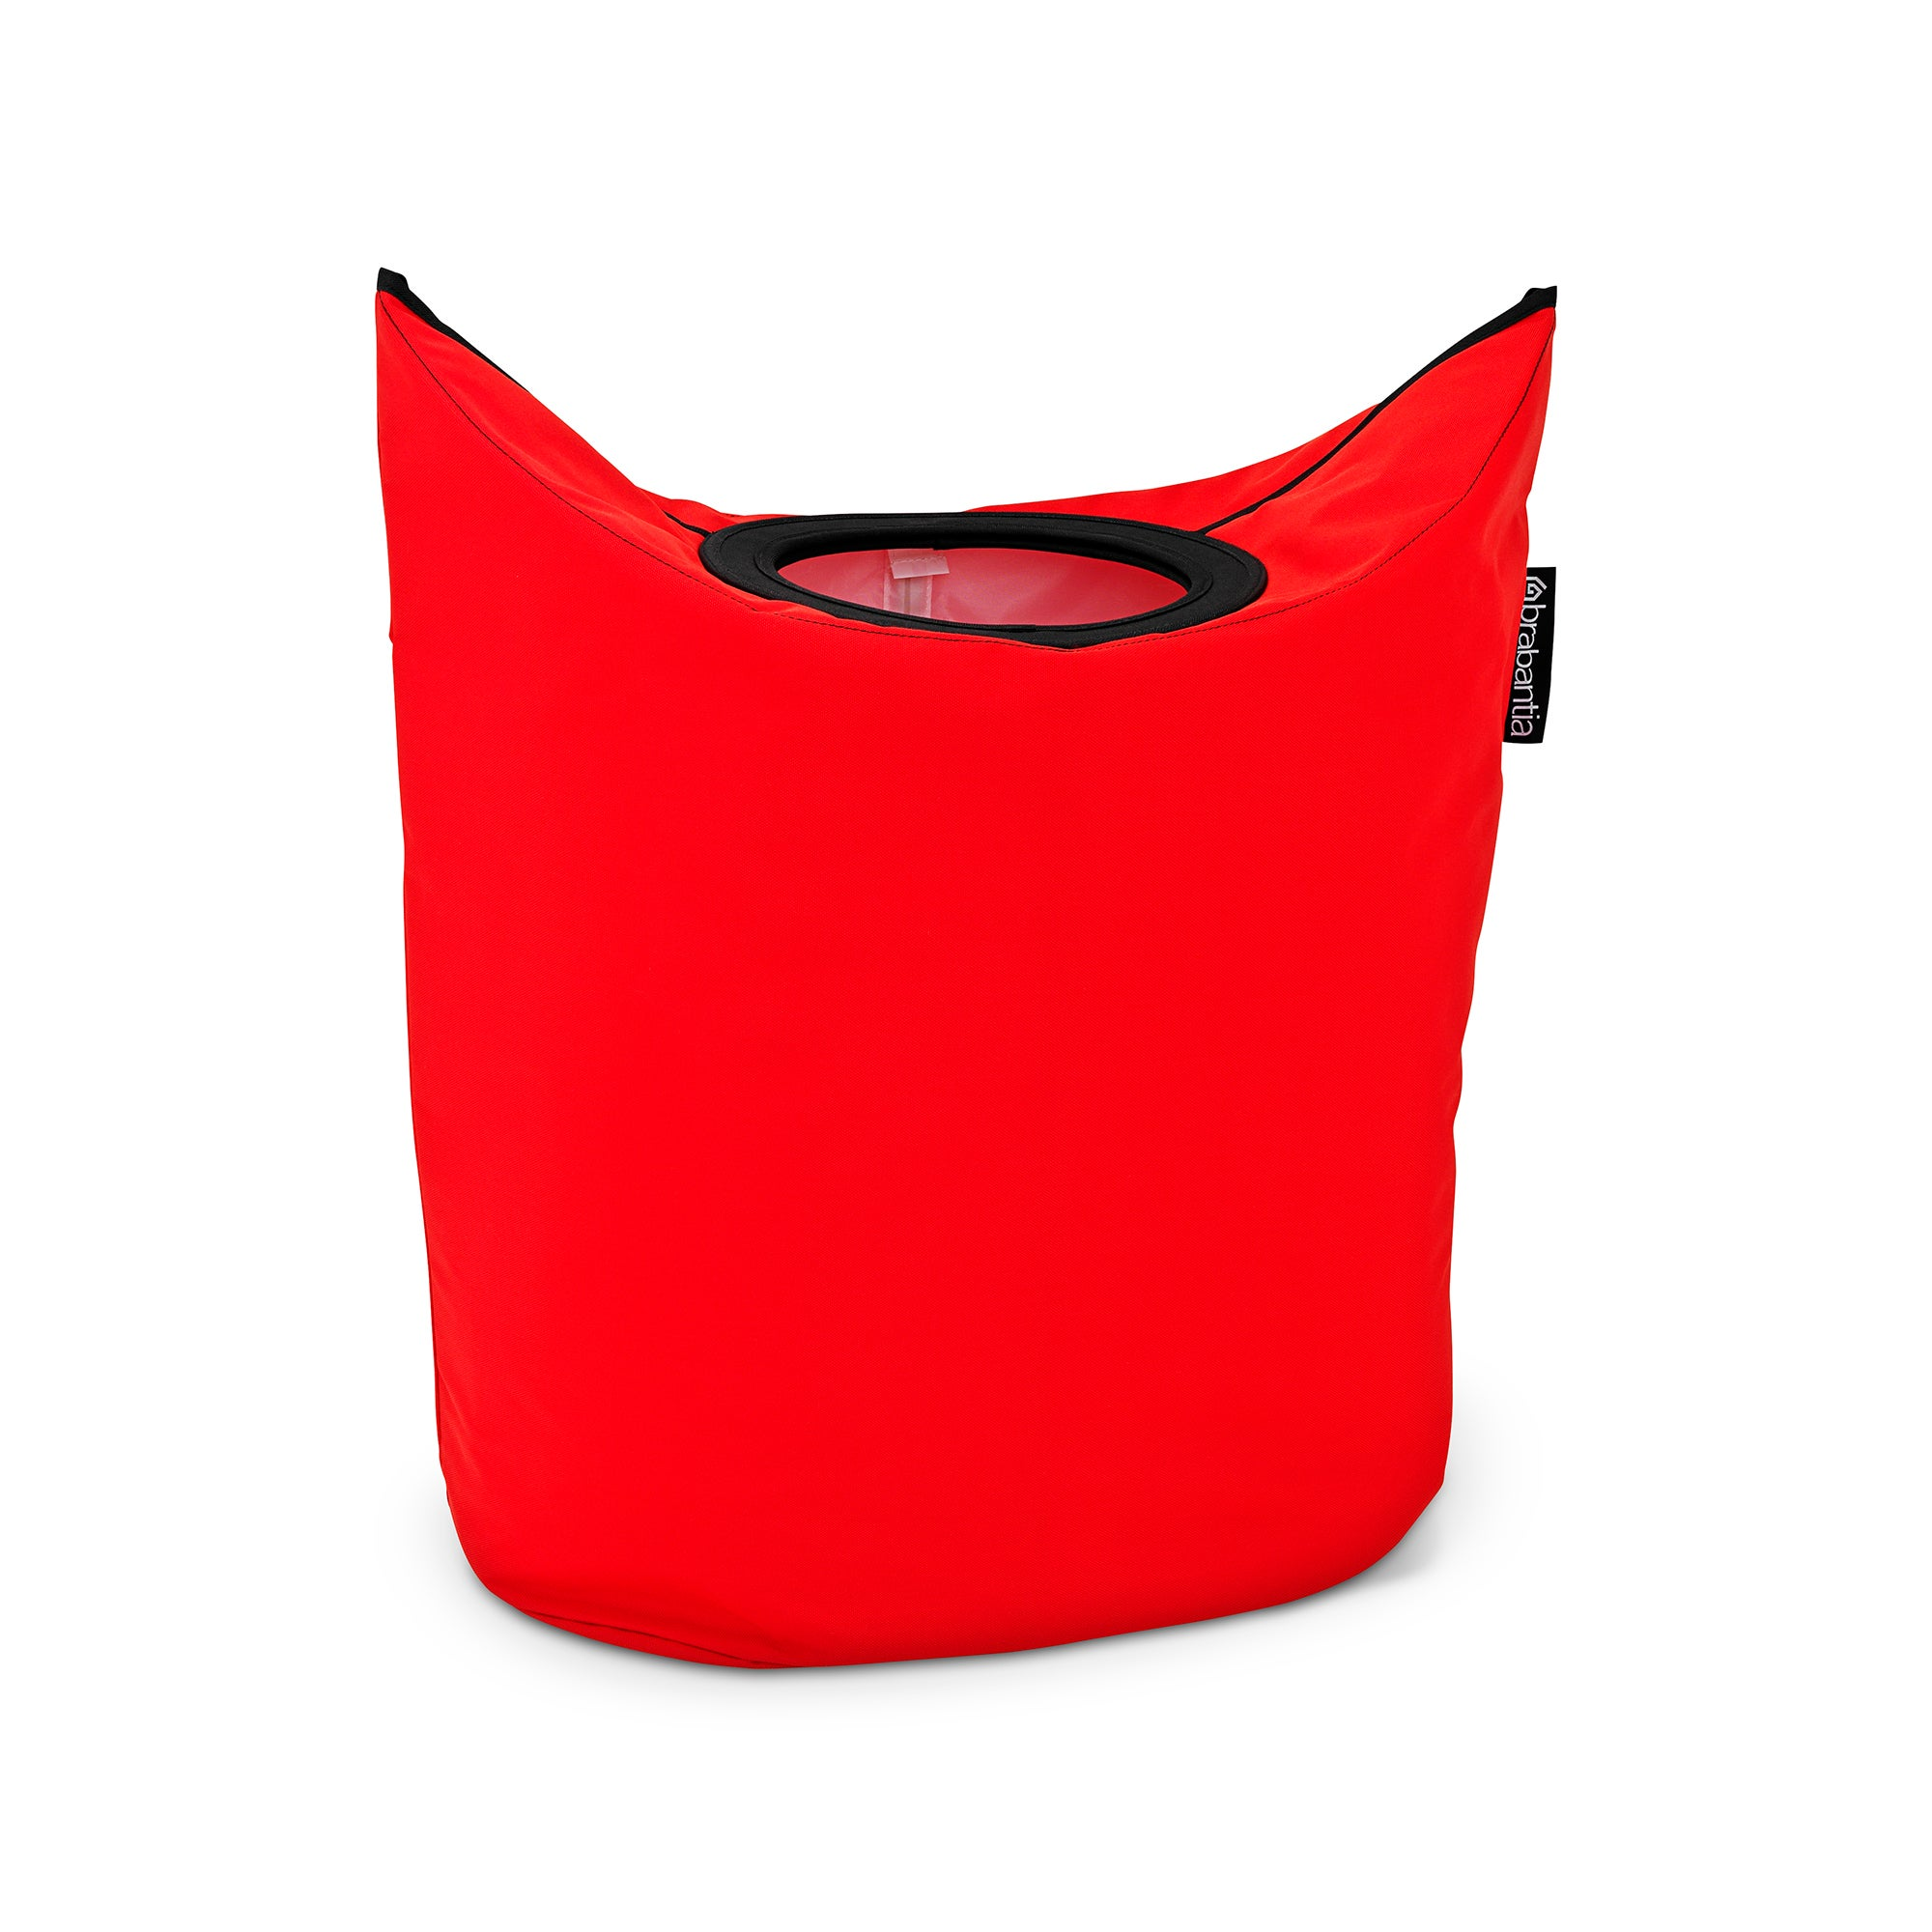 Brabantia Red 50 Litre Laundry Bag